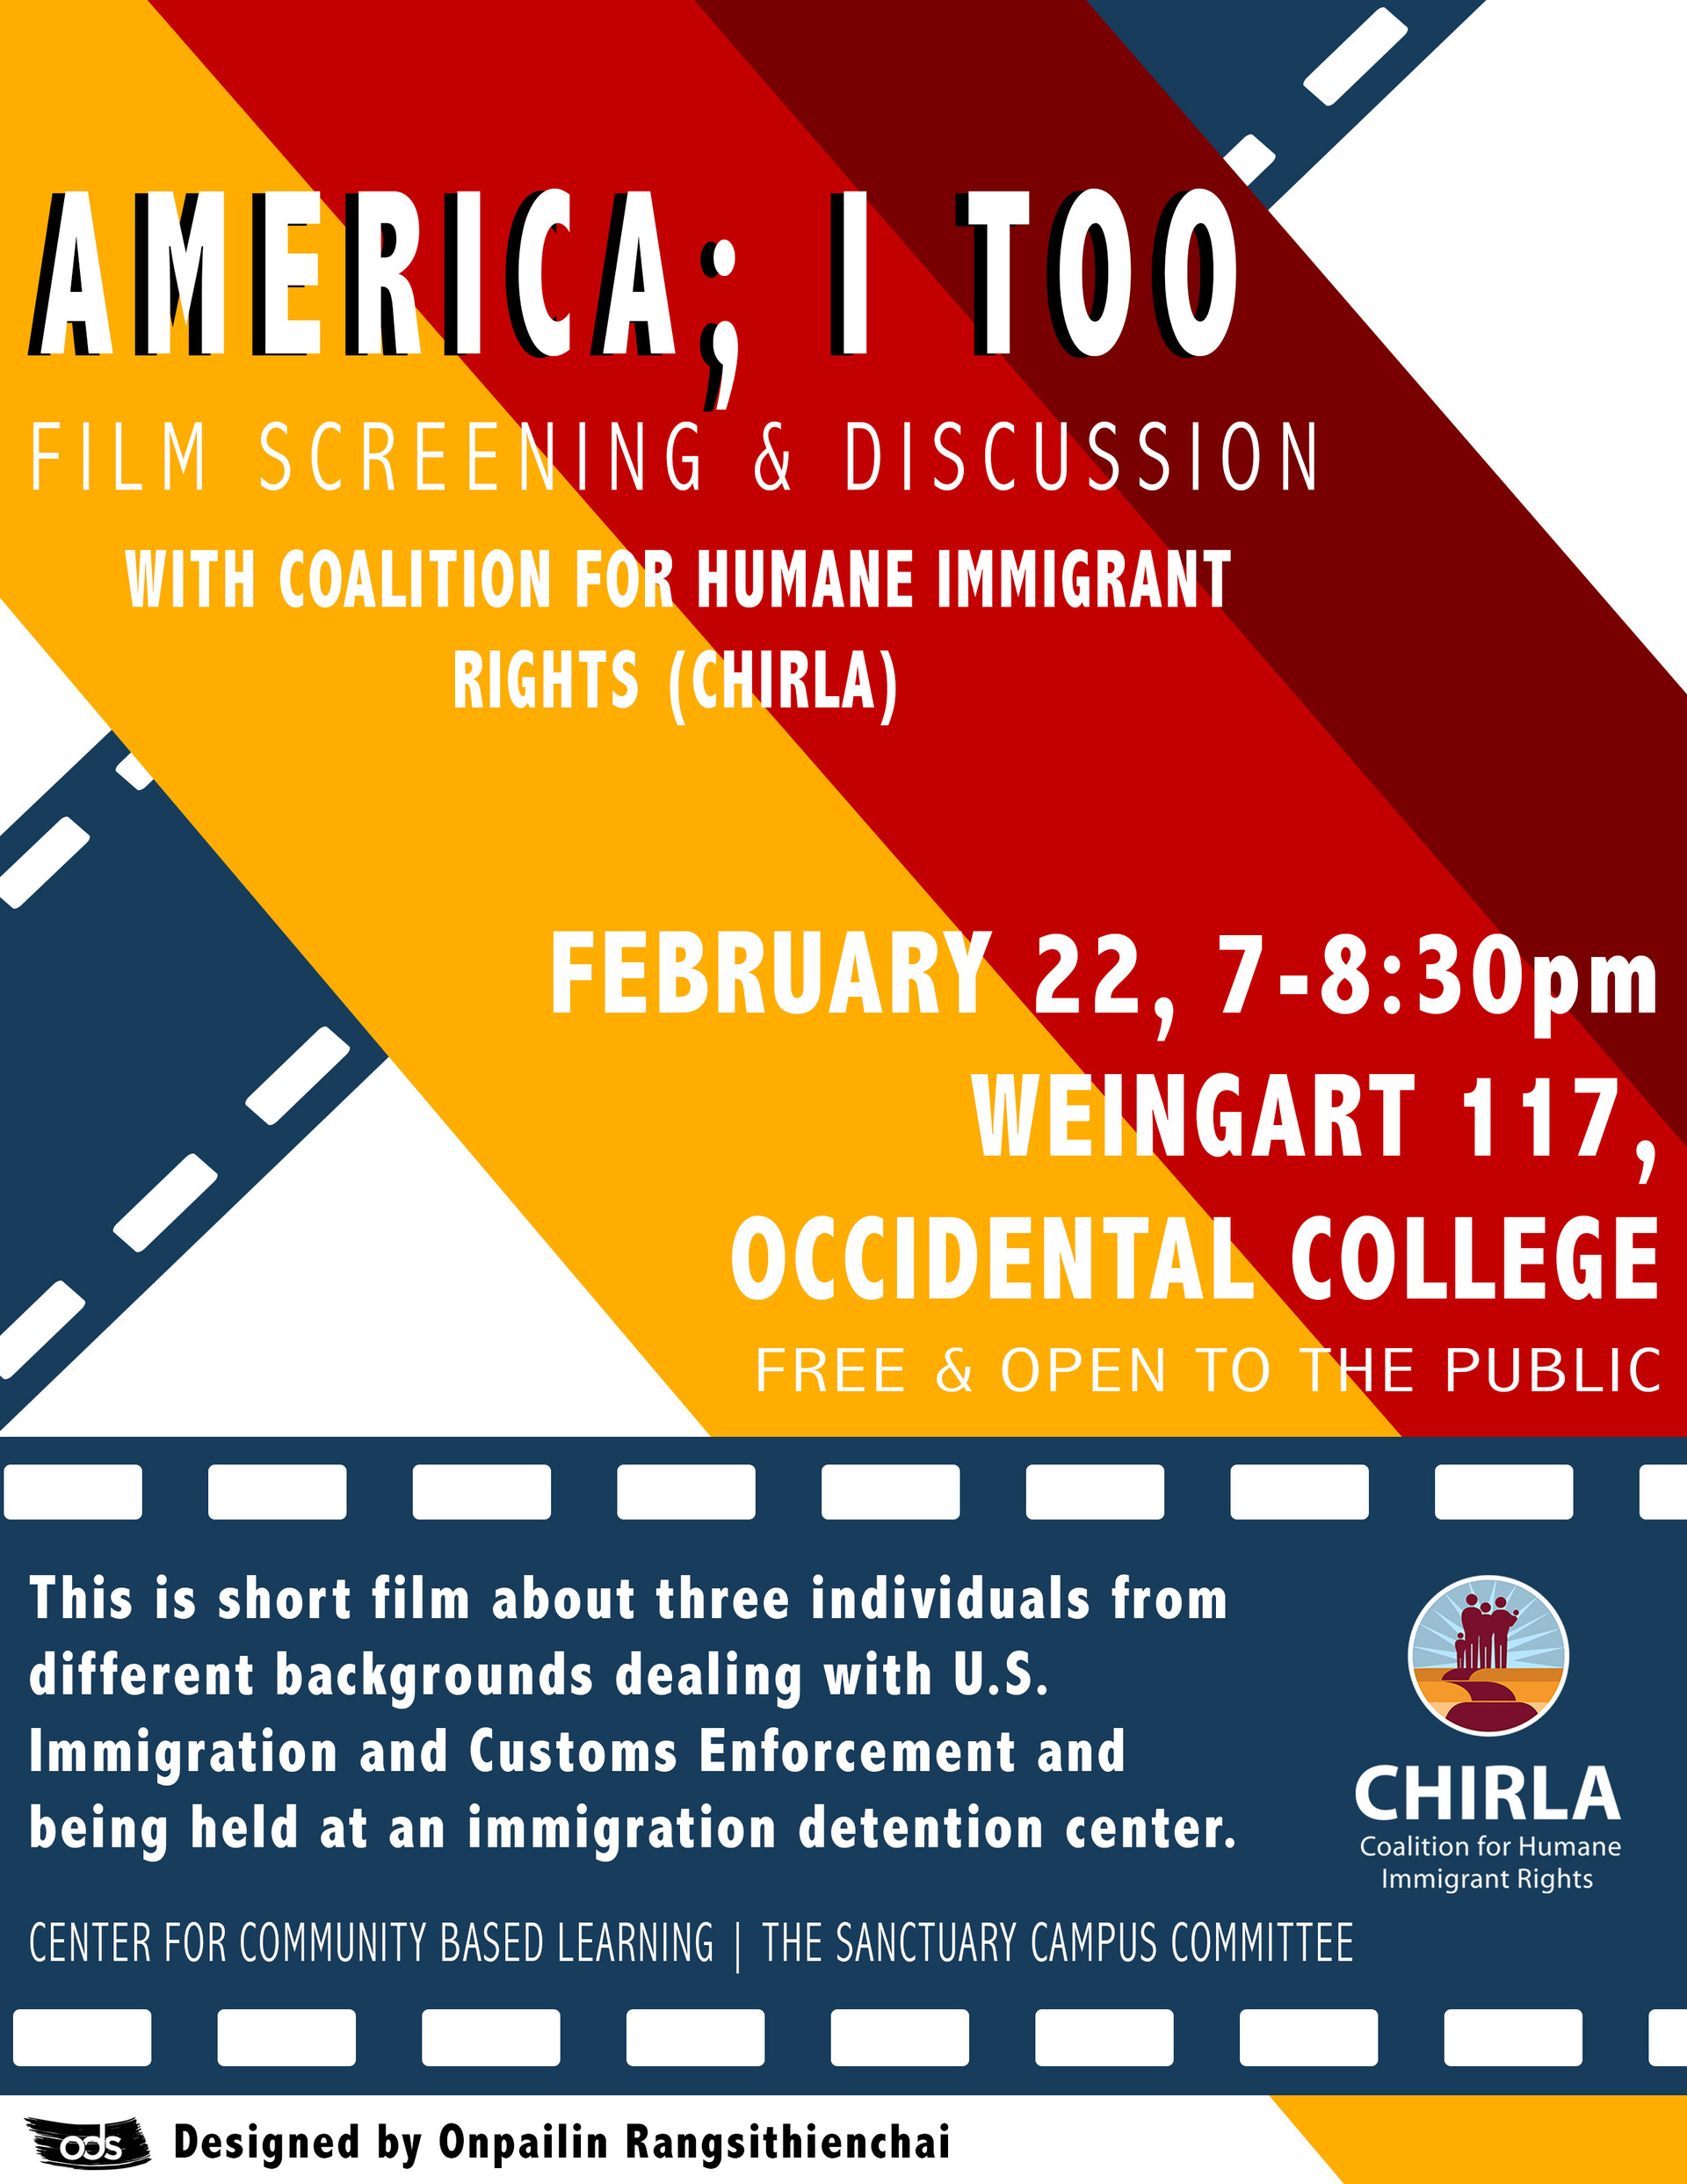 America; I too: Film screening & Discussion with Coalition for Humane Immigrant Rights (CHIRLA)